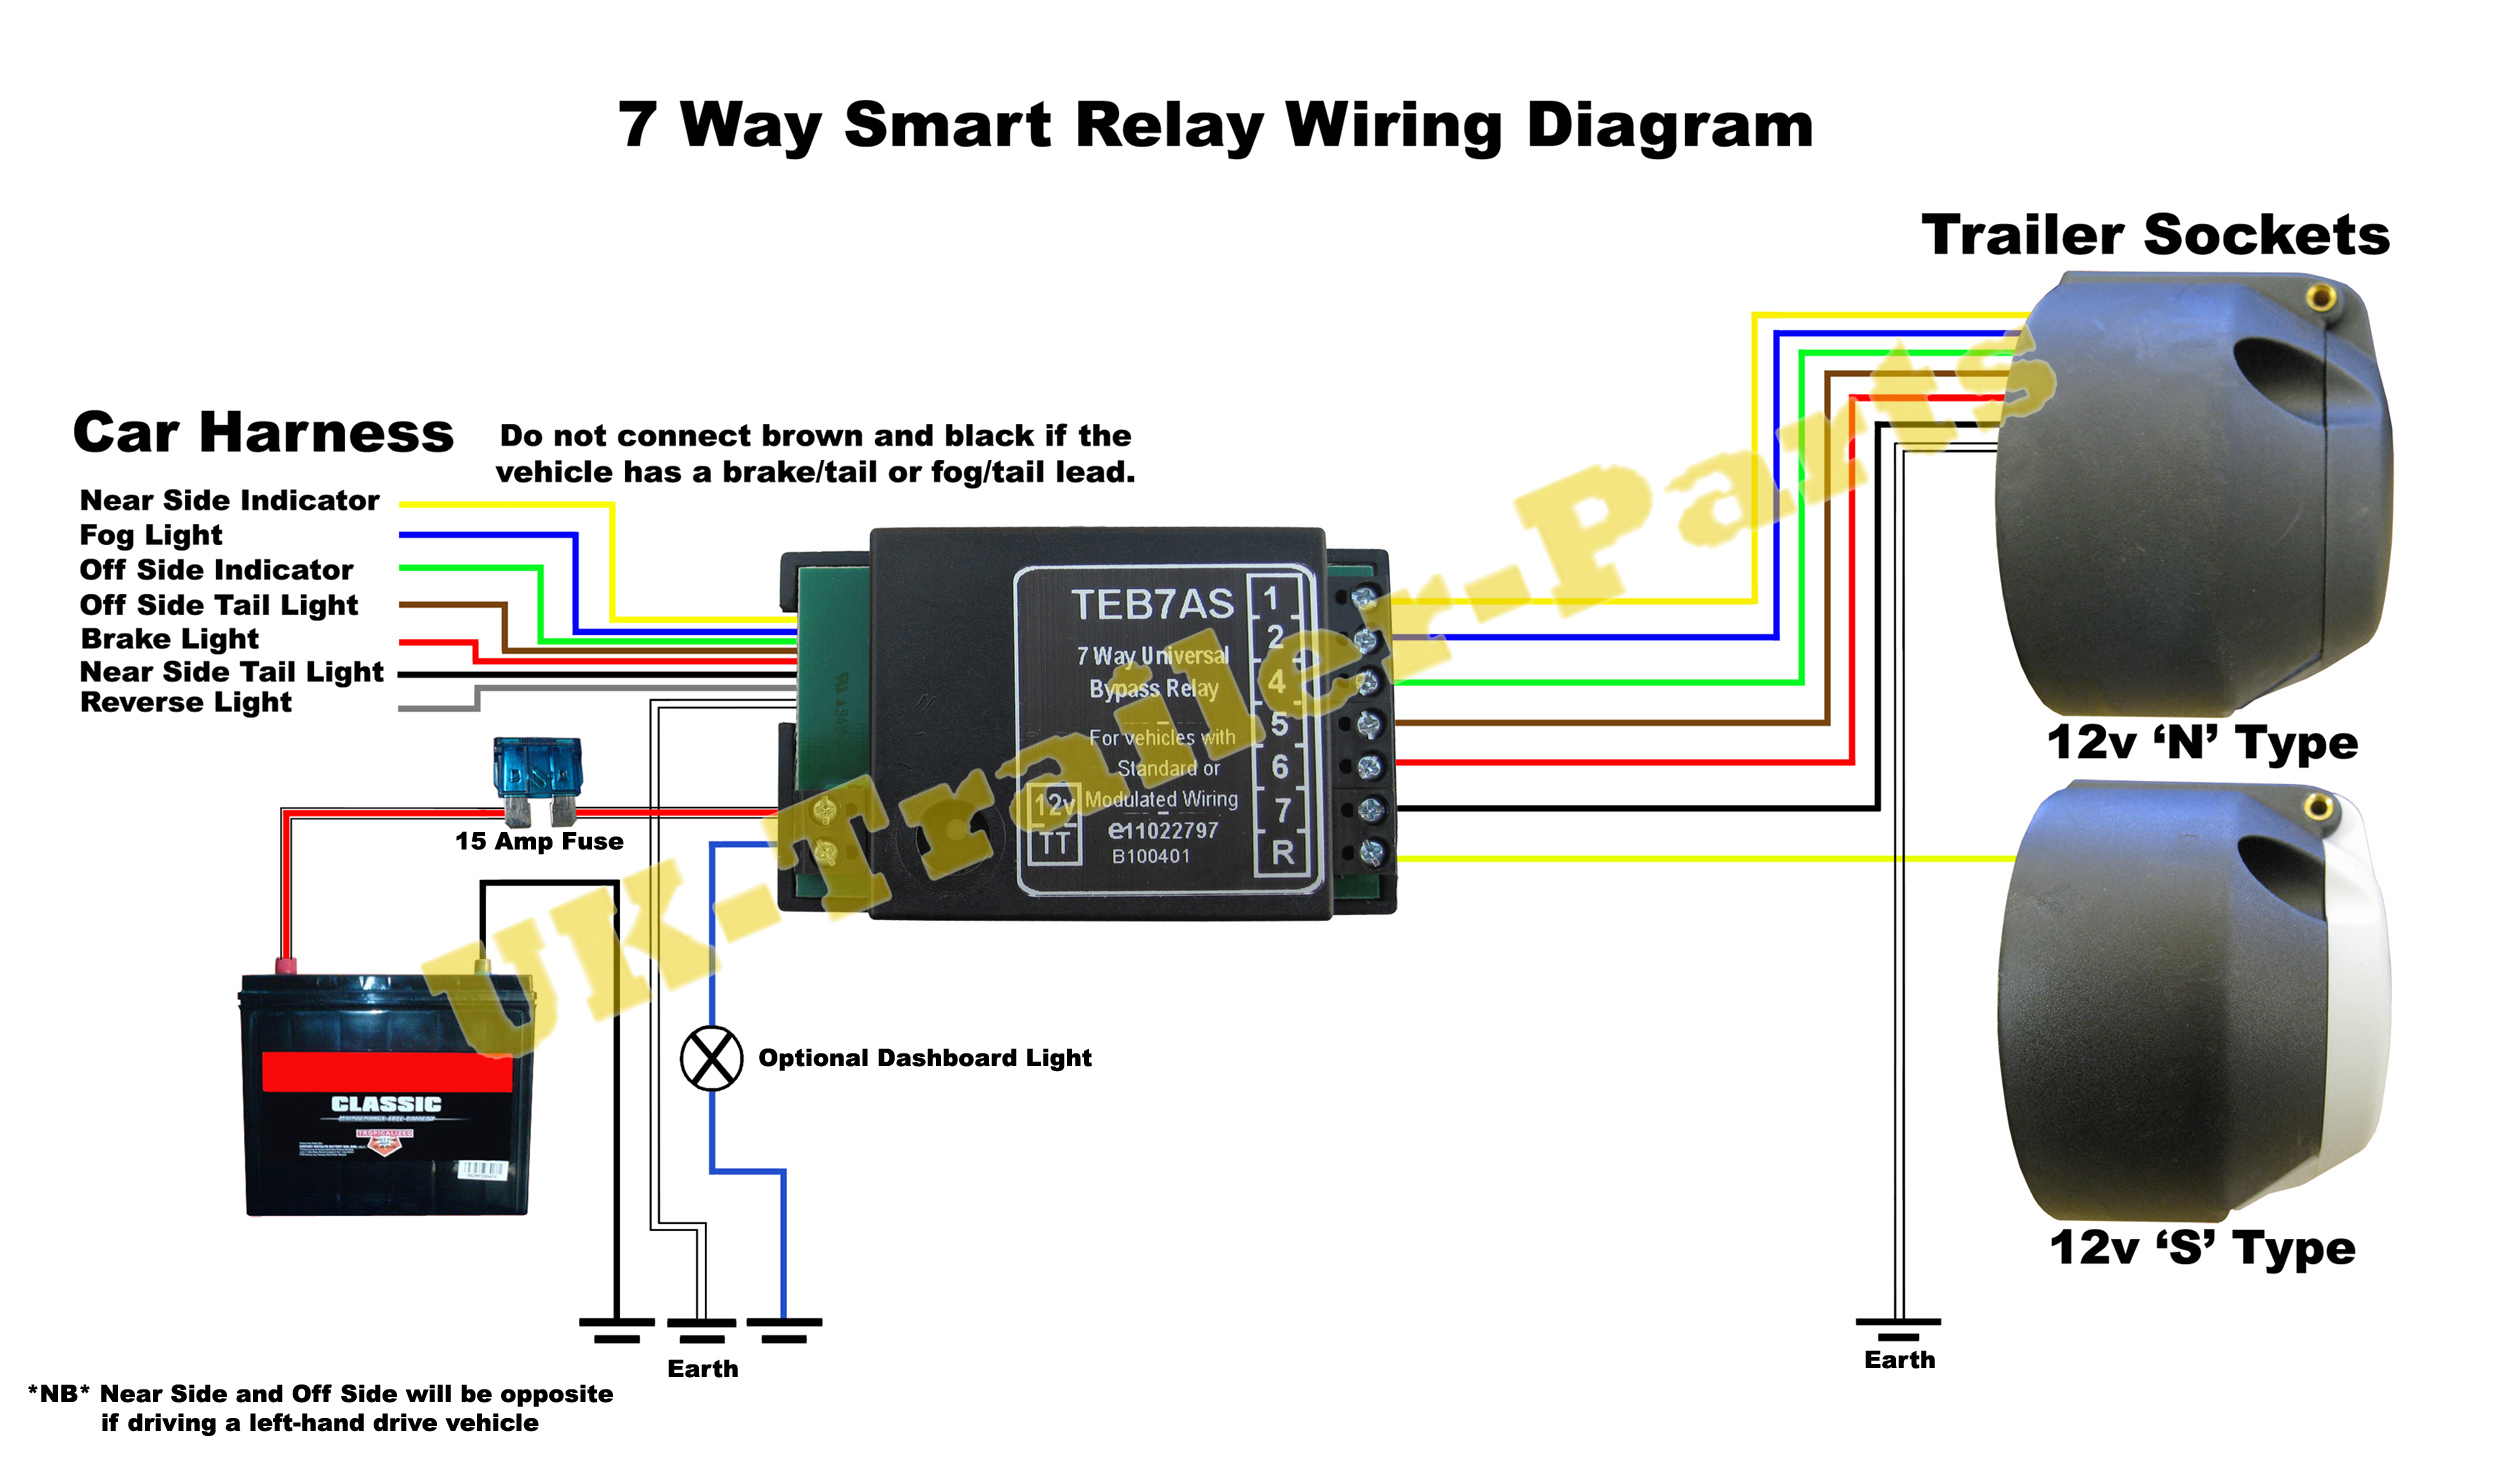 7 way universal bypass relay wiring diagram uk trailer parts on wiring diagram for trailer buzzer